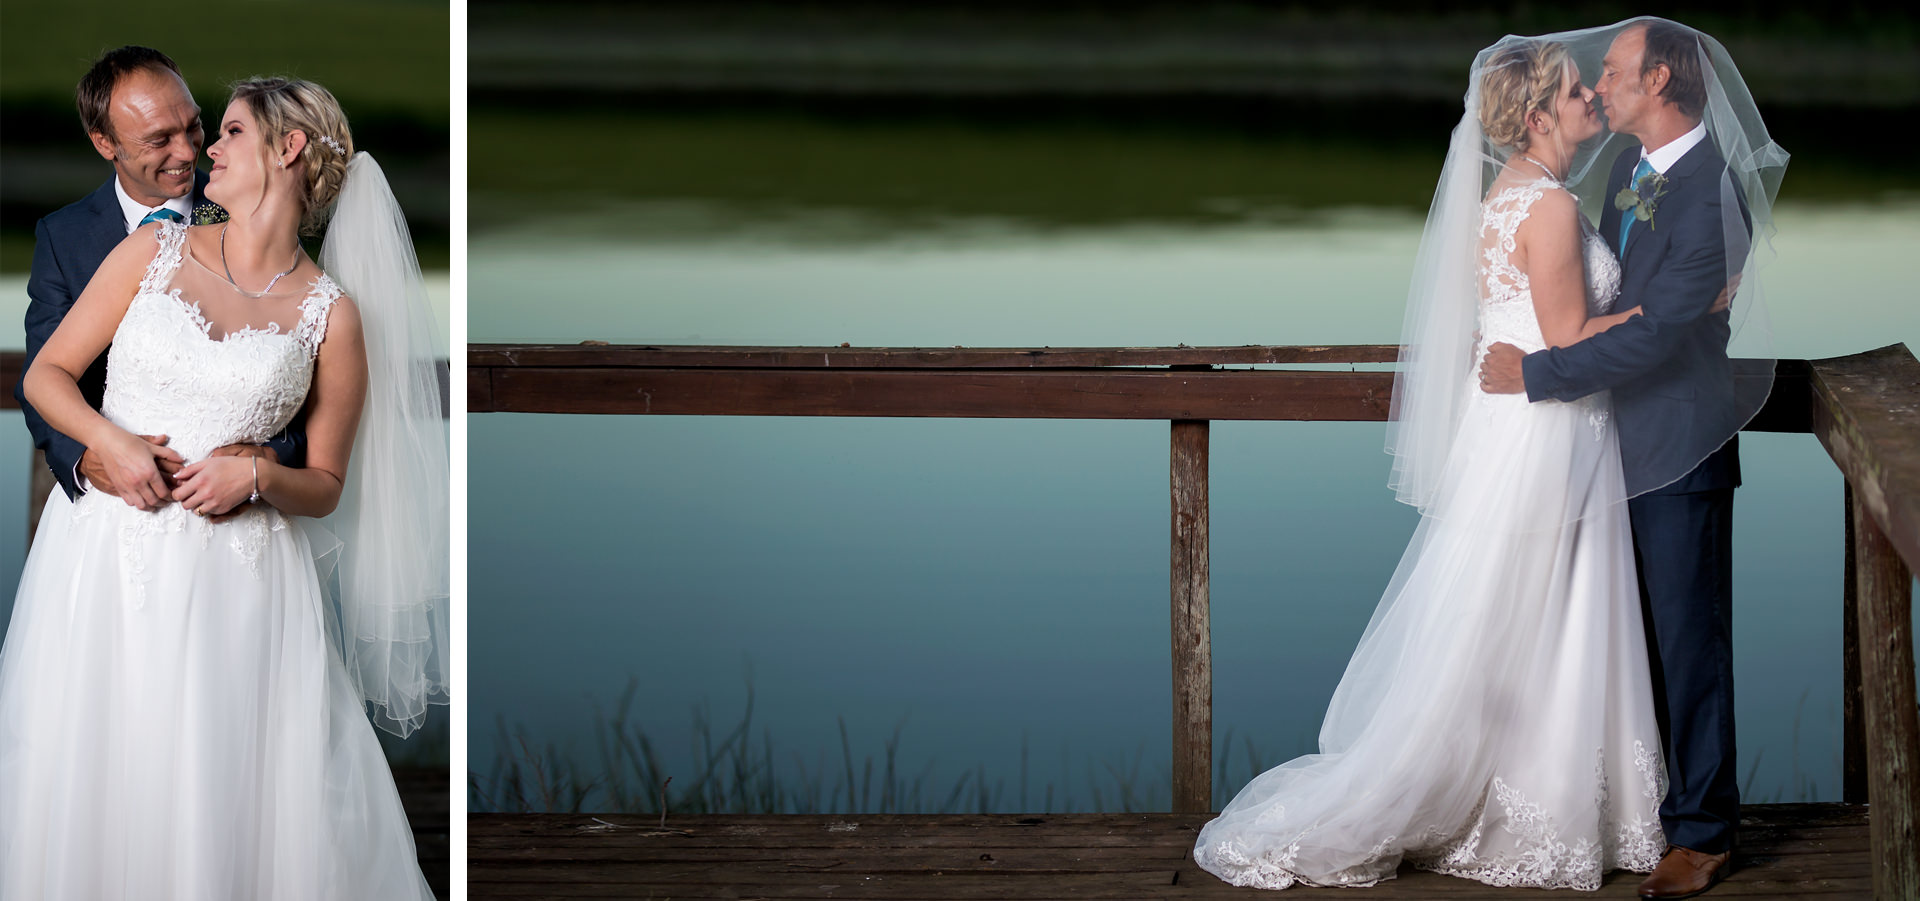 bride-and-groom-landscape-scenic-henry-summers-photography-best-wedding-photographer-durban-gillitts-kwa-zulu-natal-south-african-photographer